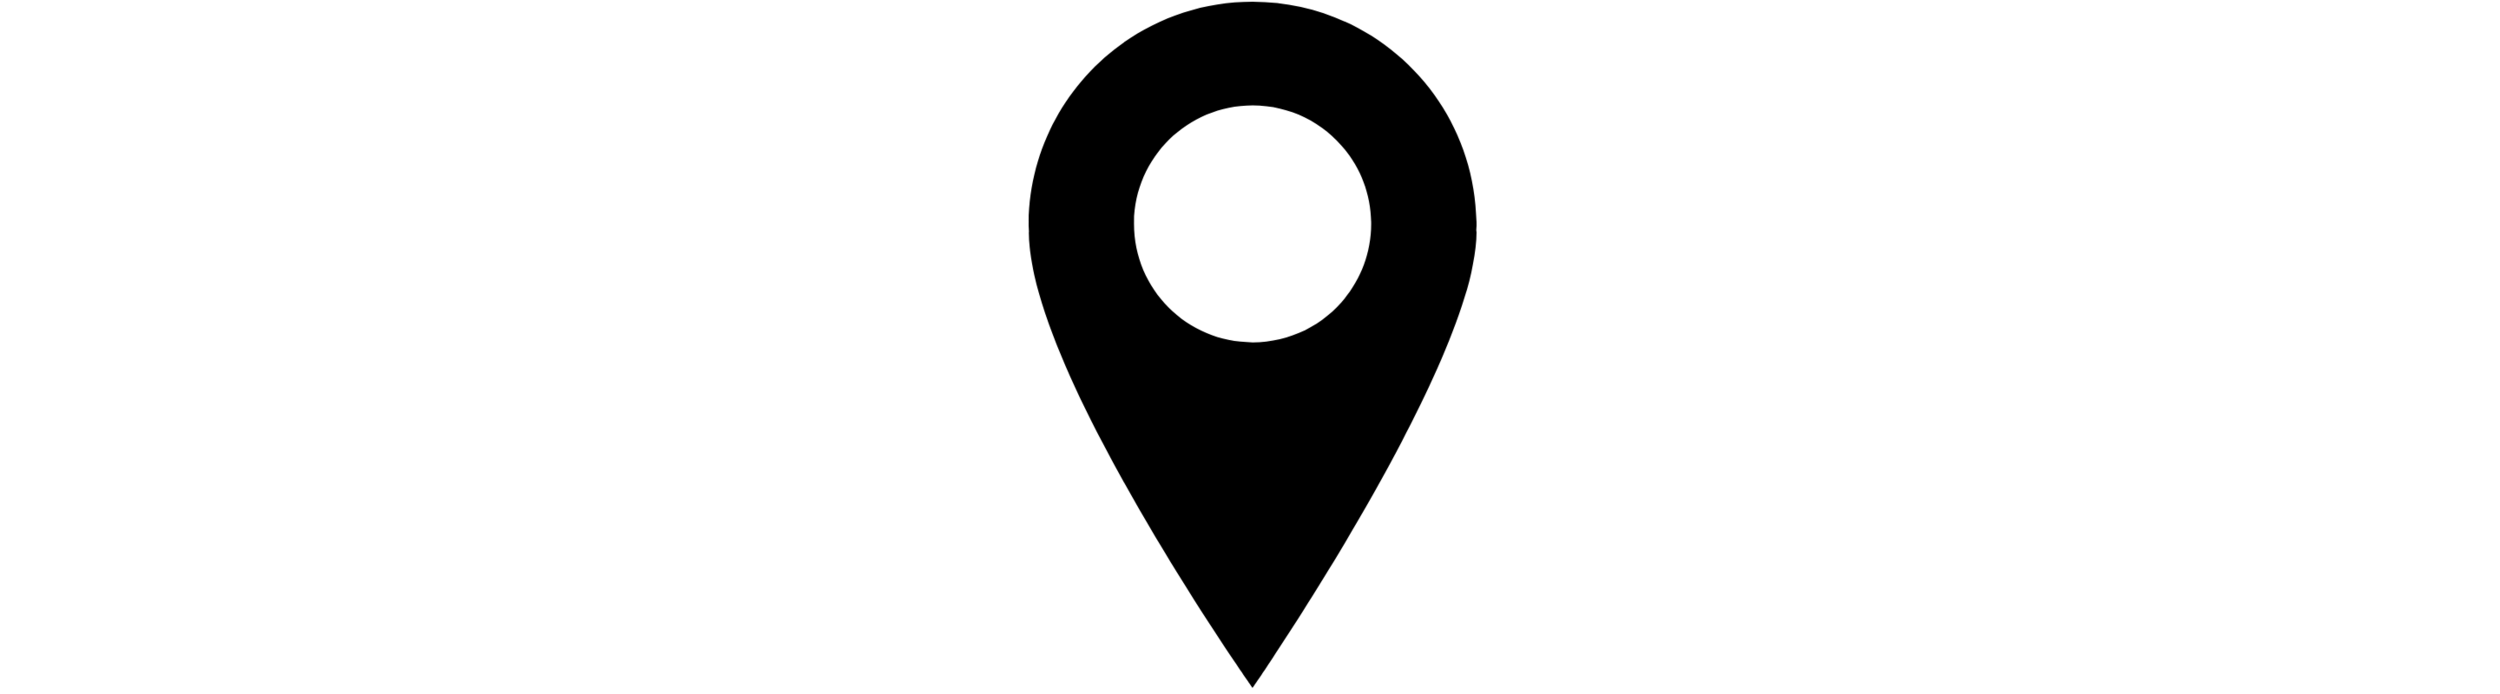 location-2.png